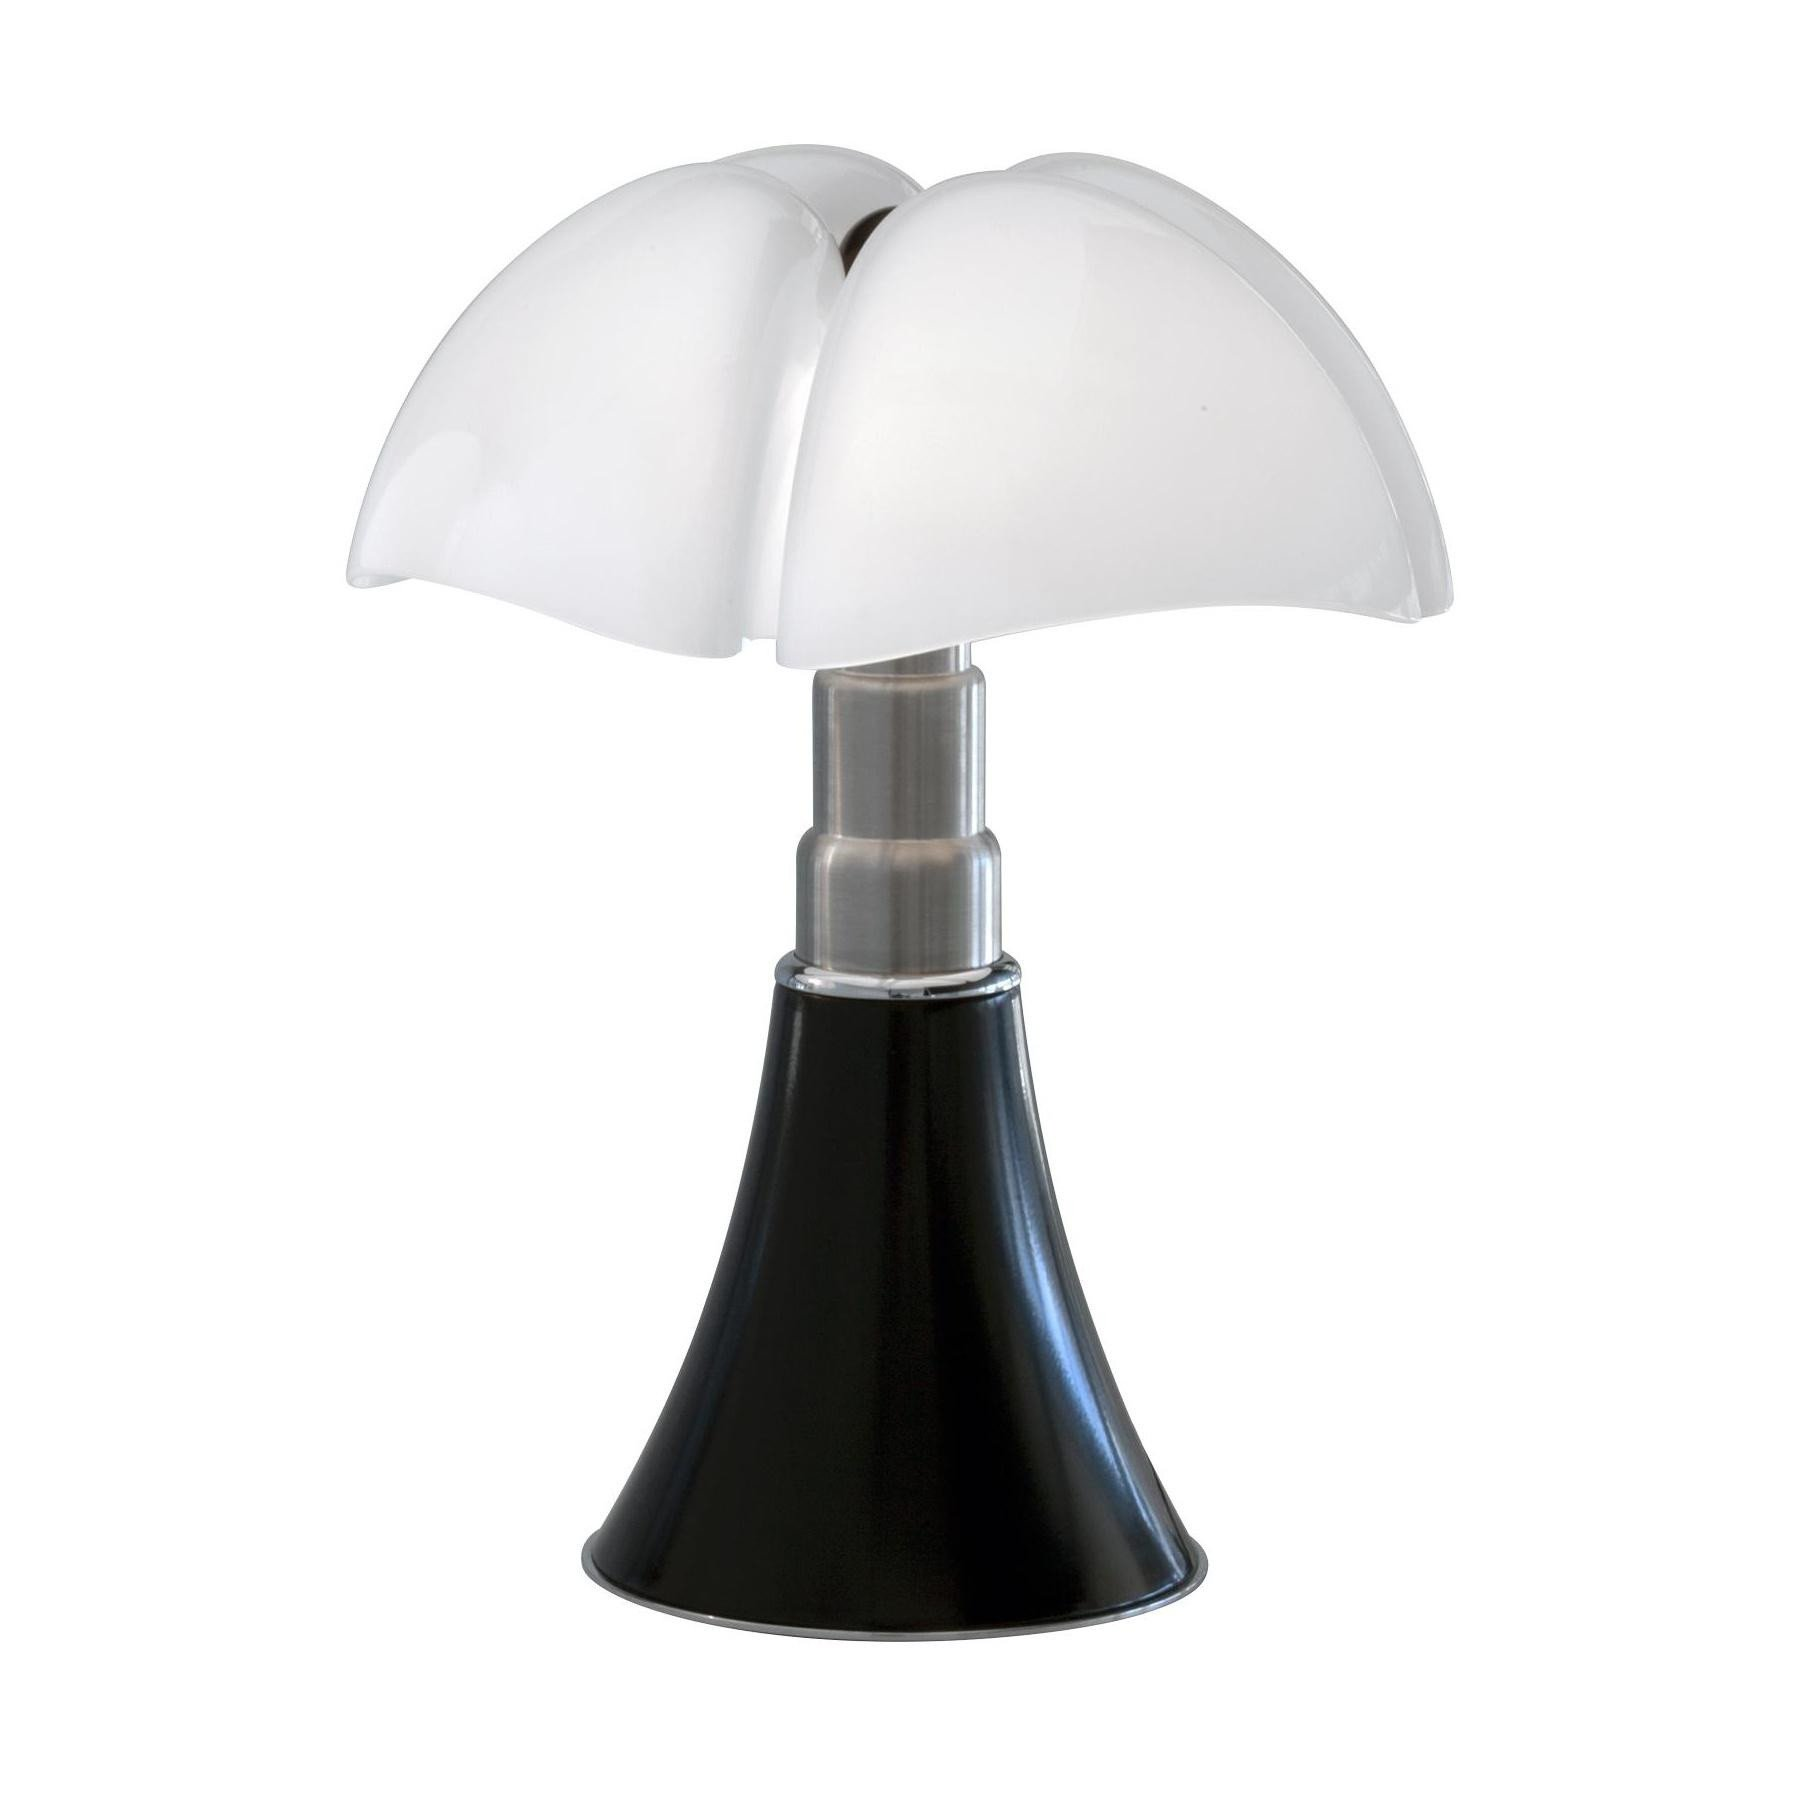 martinelli luce pipistrello led lampe de table dimmable ambientedirect. Black Bedroom Furniture Sets. Home Design Ideas